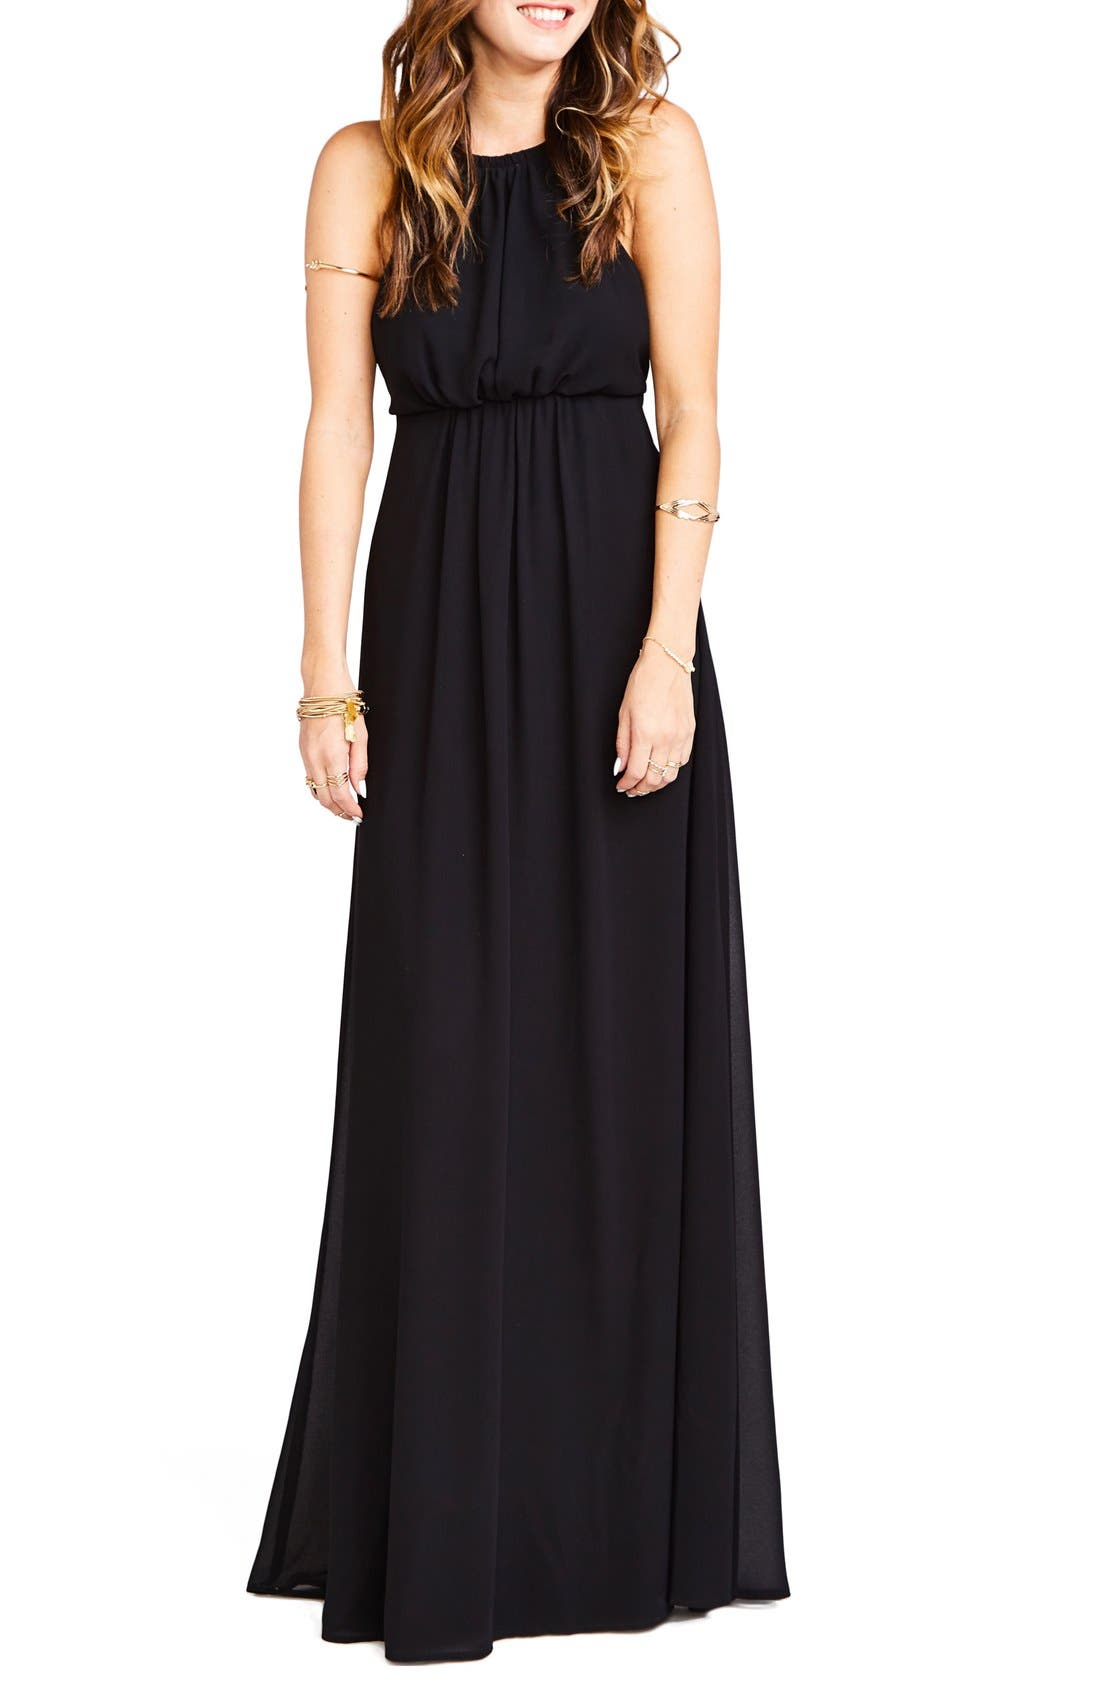 Amanda Open Back Blouson Gown,                         Main,                         color,